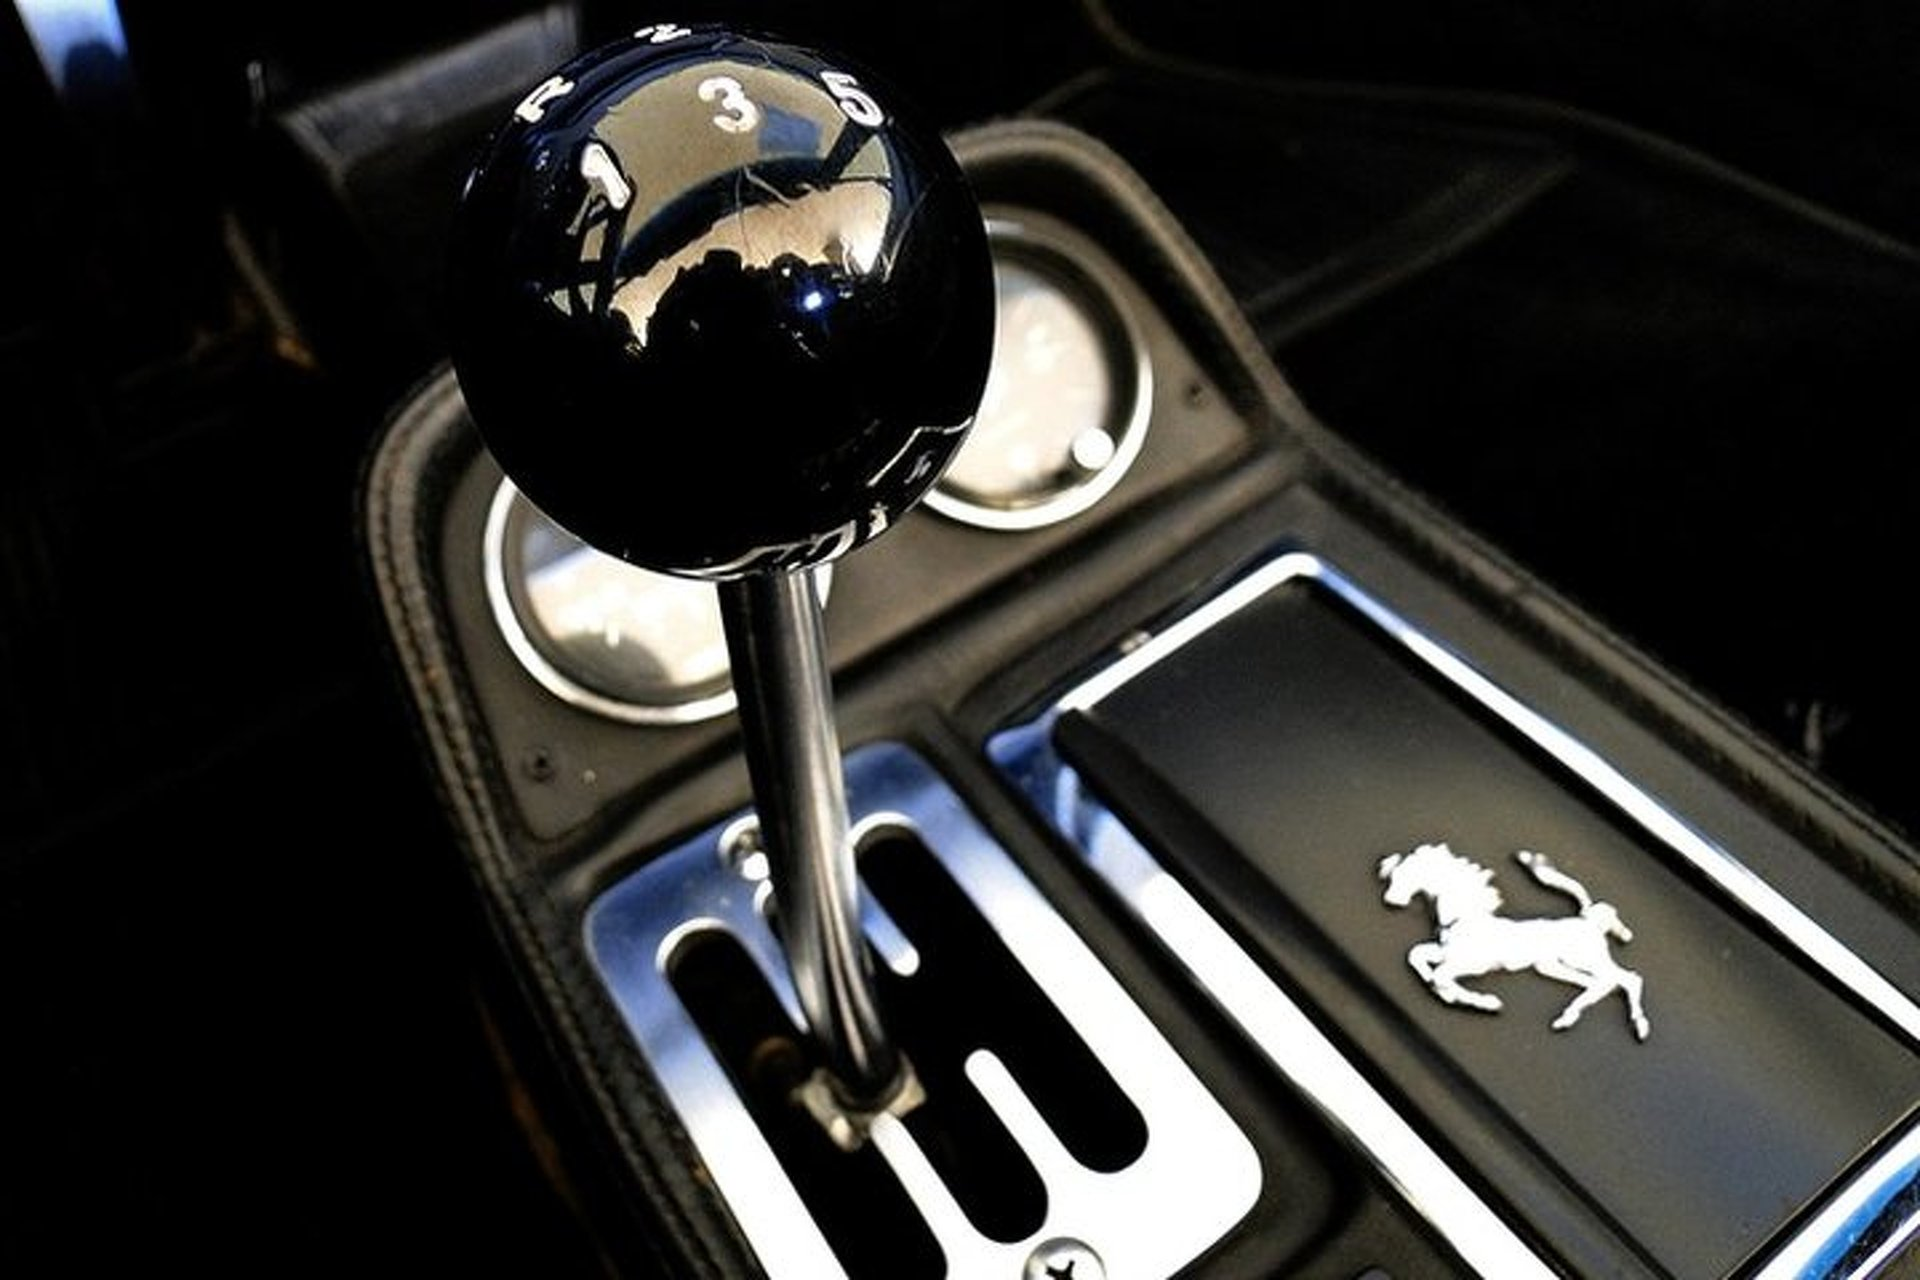 Want a Manual Transmission? Your Choices are Limited